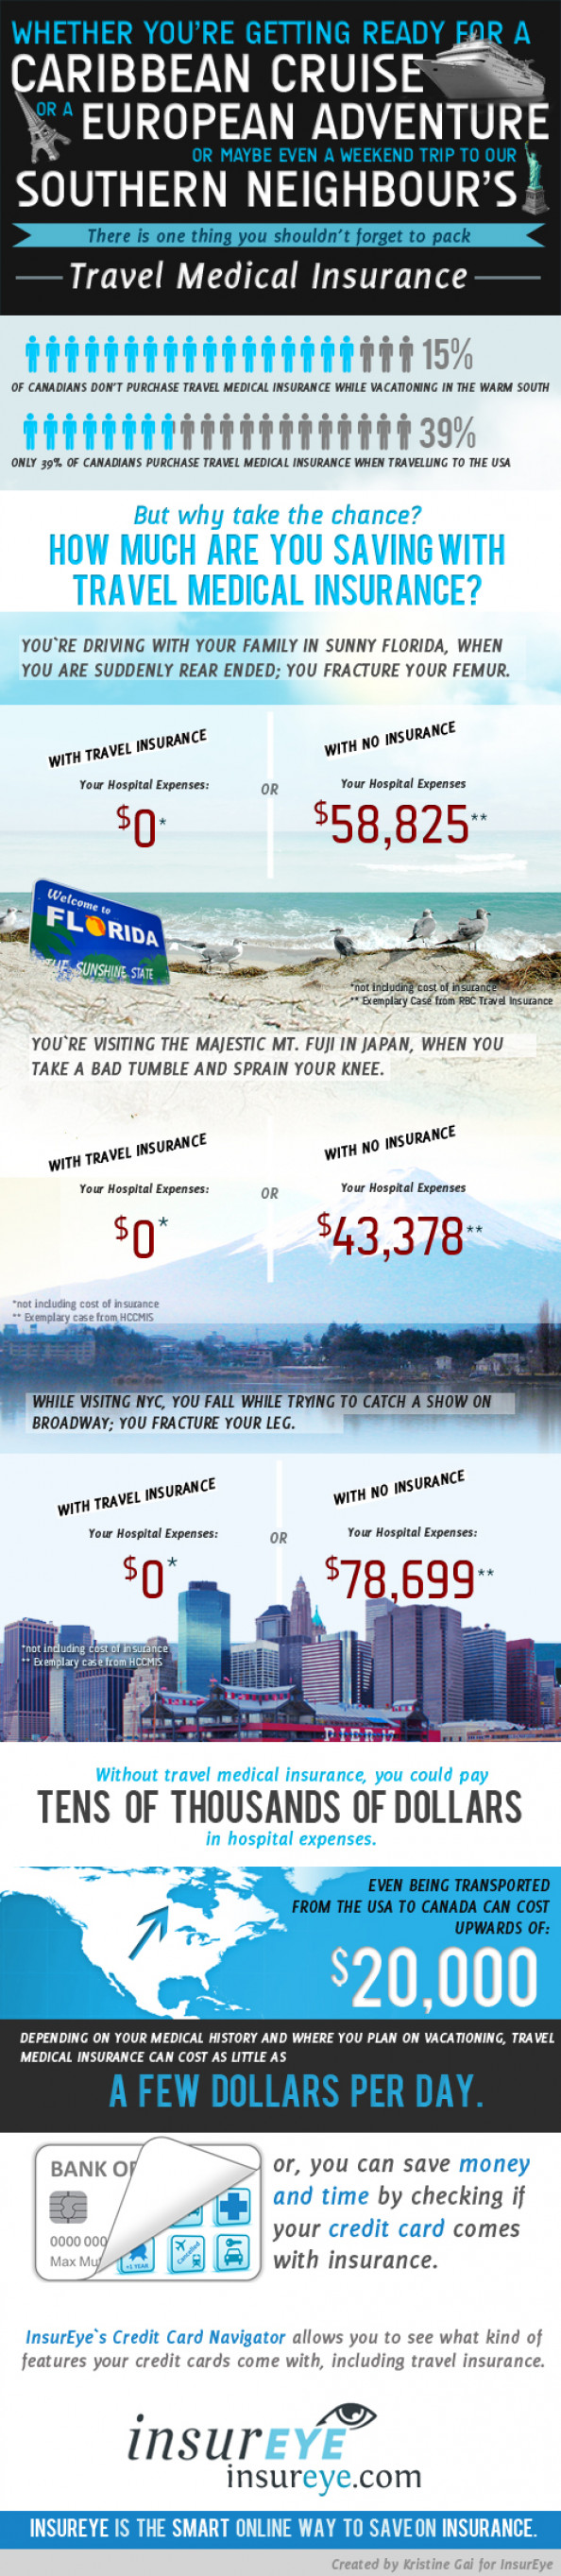 Travelling w/o Medical Insurance: Do You Realize How Much That Can Cost You? Infographic